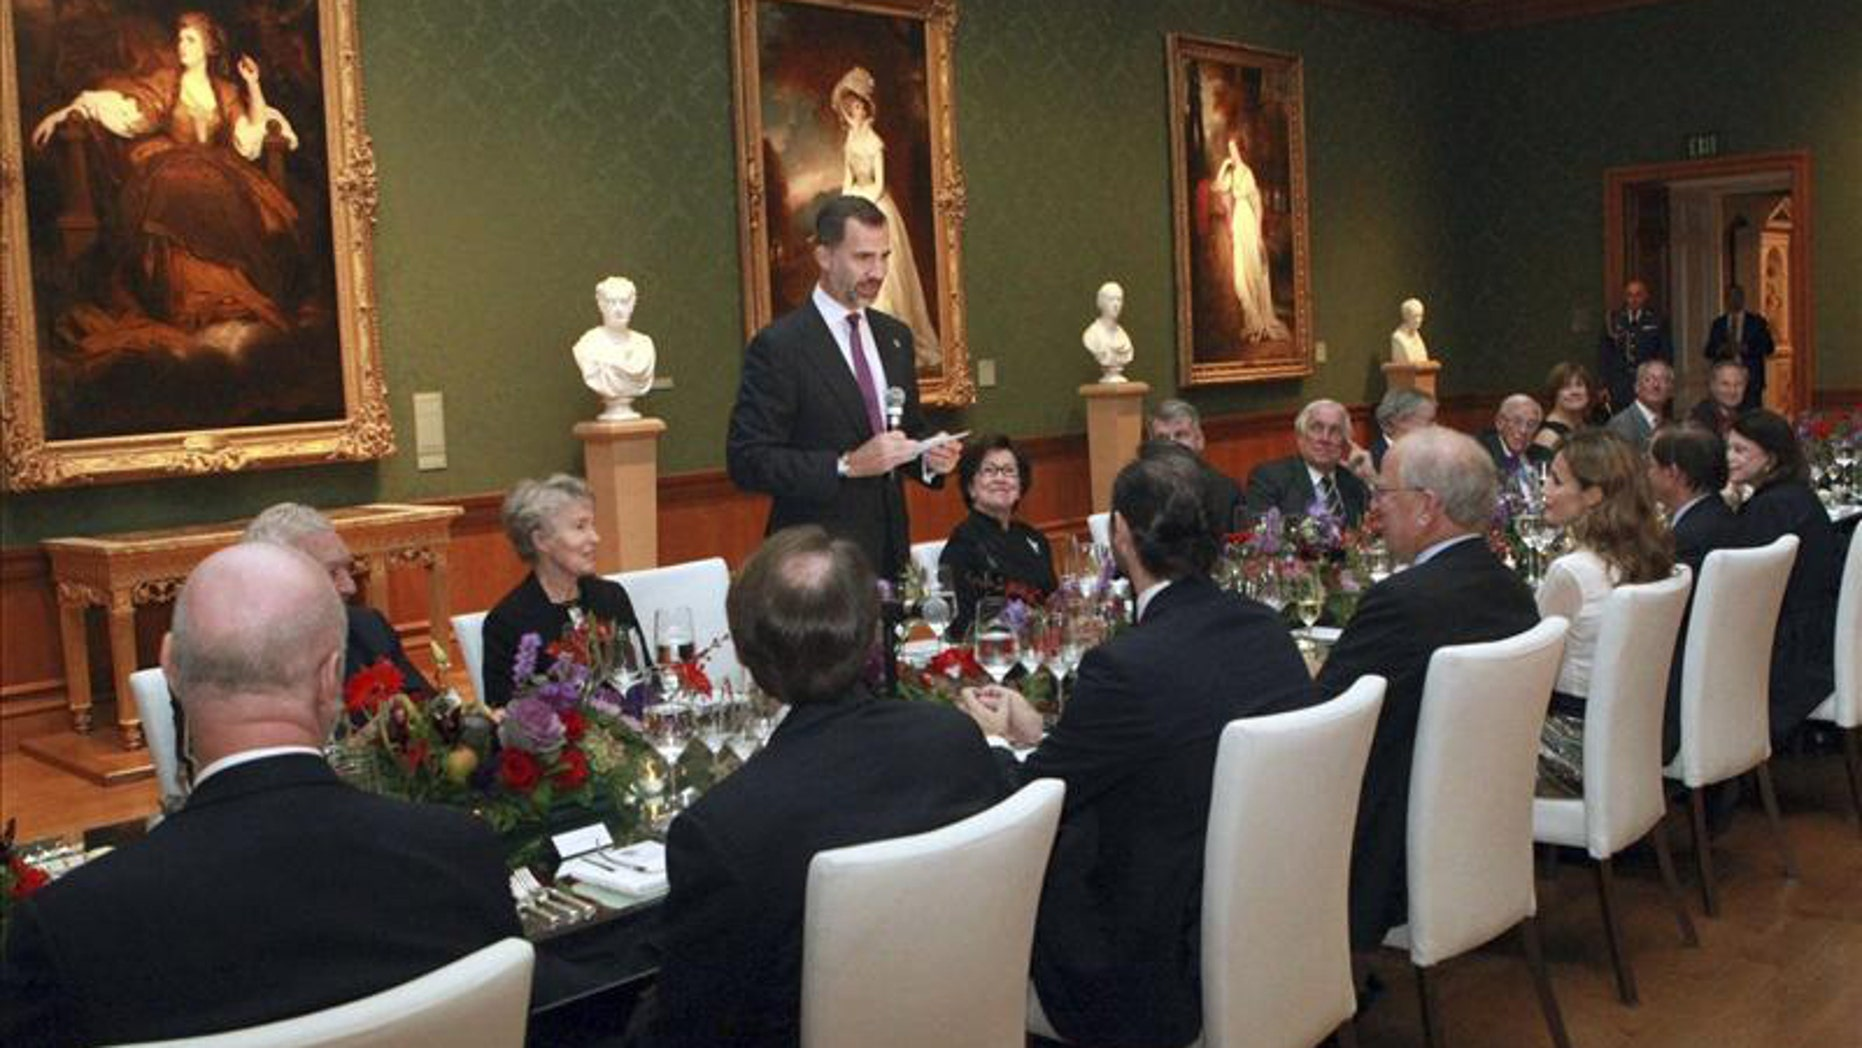 Crown Prince Felipe giving an address at a dinner in California's Huntington Library, the final event on the official agenda of the prince and his wife, Princess Letizia, before they departed for Florida and the Miami Book Fair International. EFE/Photo provided by the Spanish Royal Palace